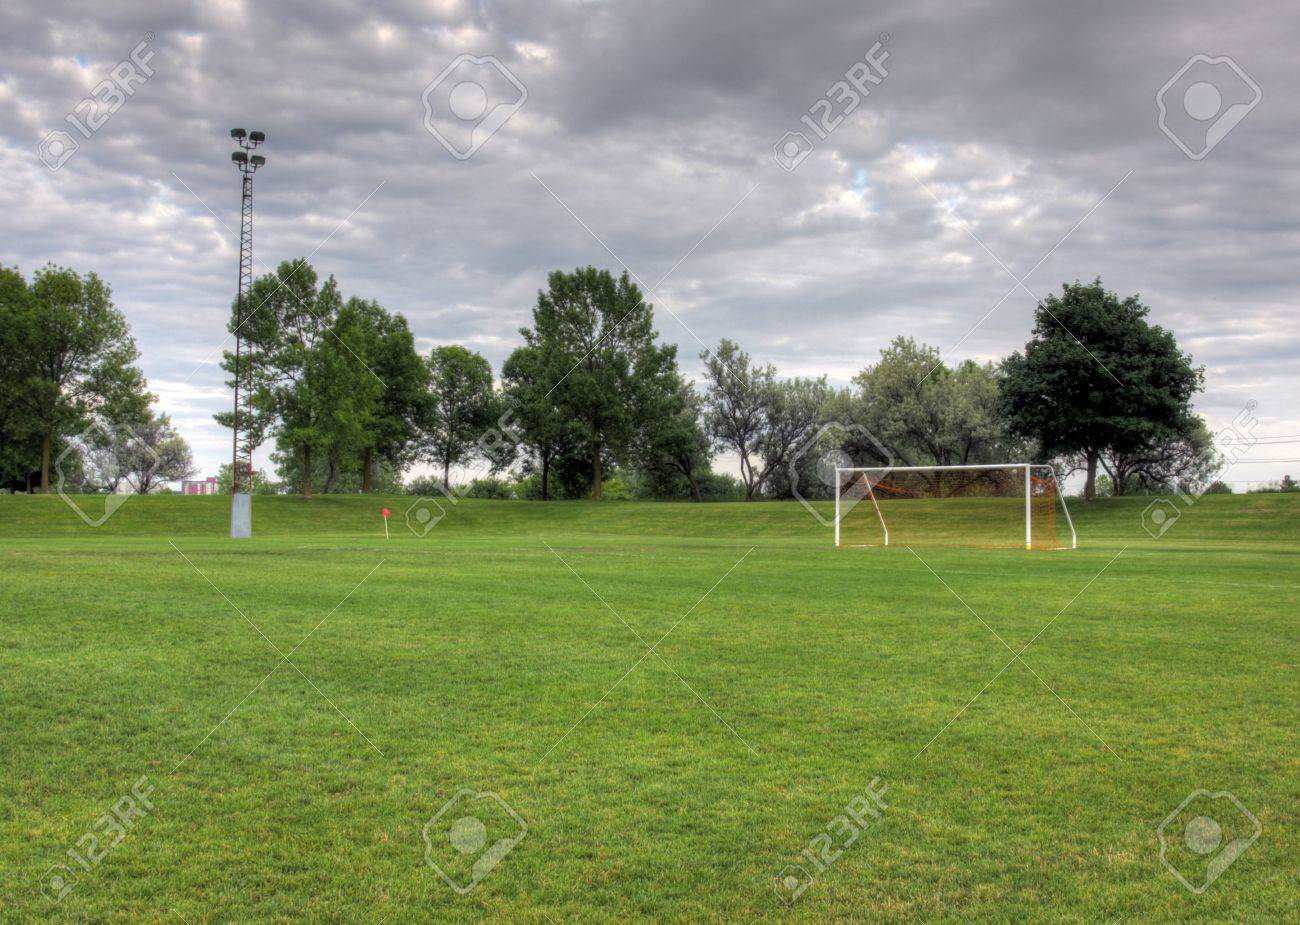 A cloudy unoccupied soccer field with trees in the background a cloudy unoccupied soccer field with trees in the background hdr photograph stock altavistaventures Gallery